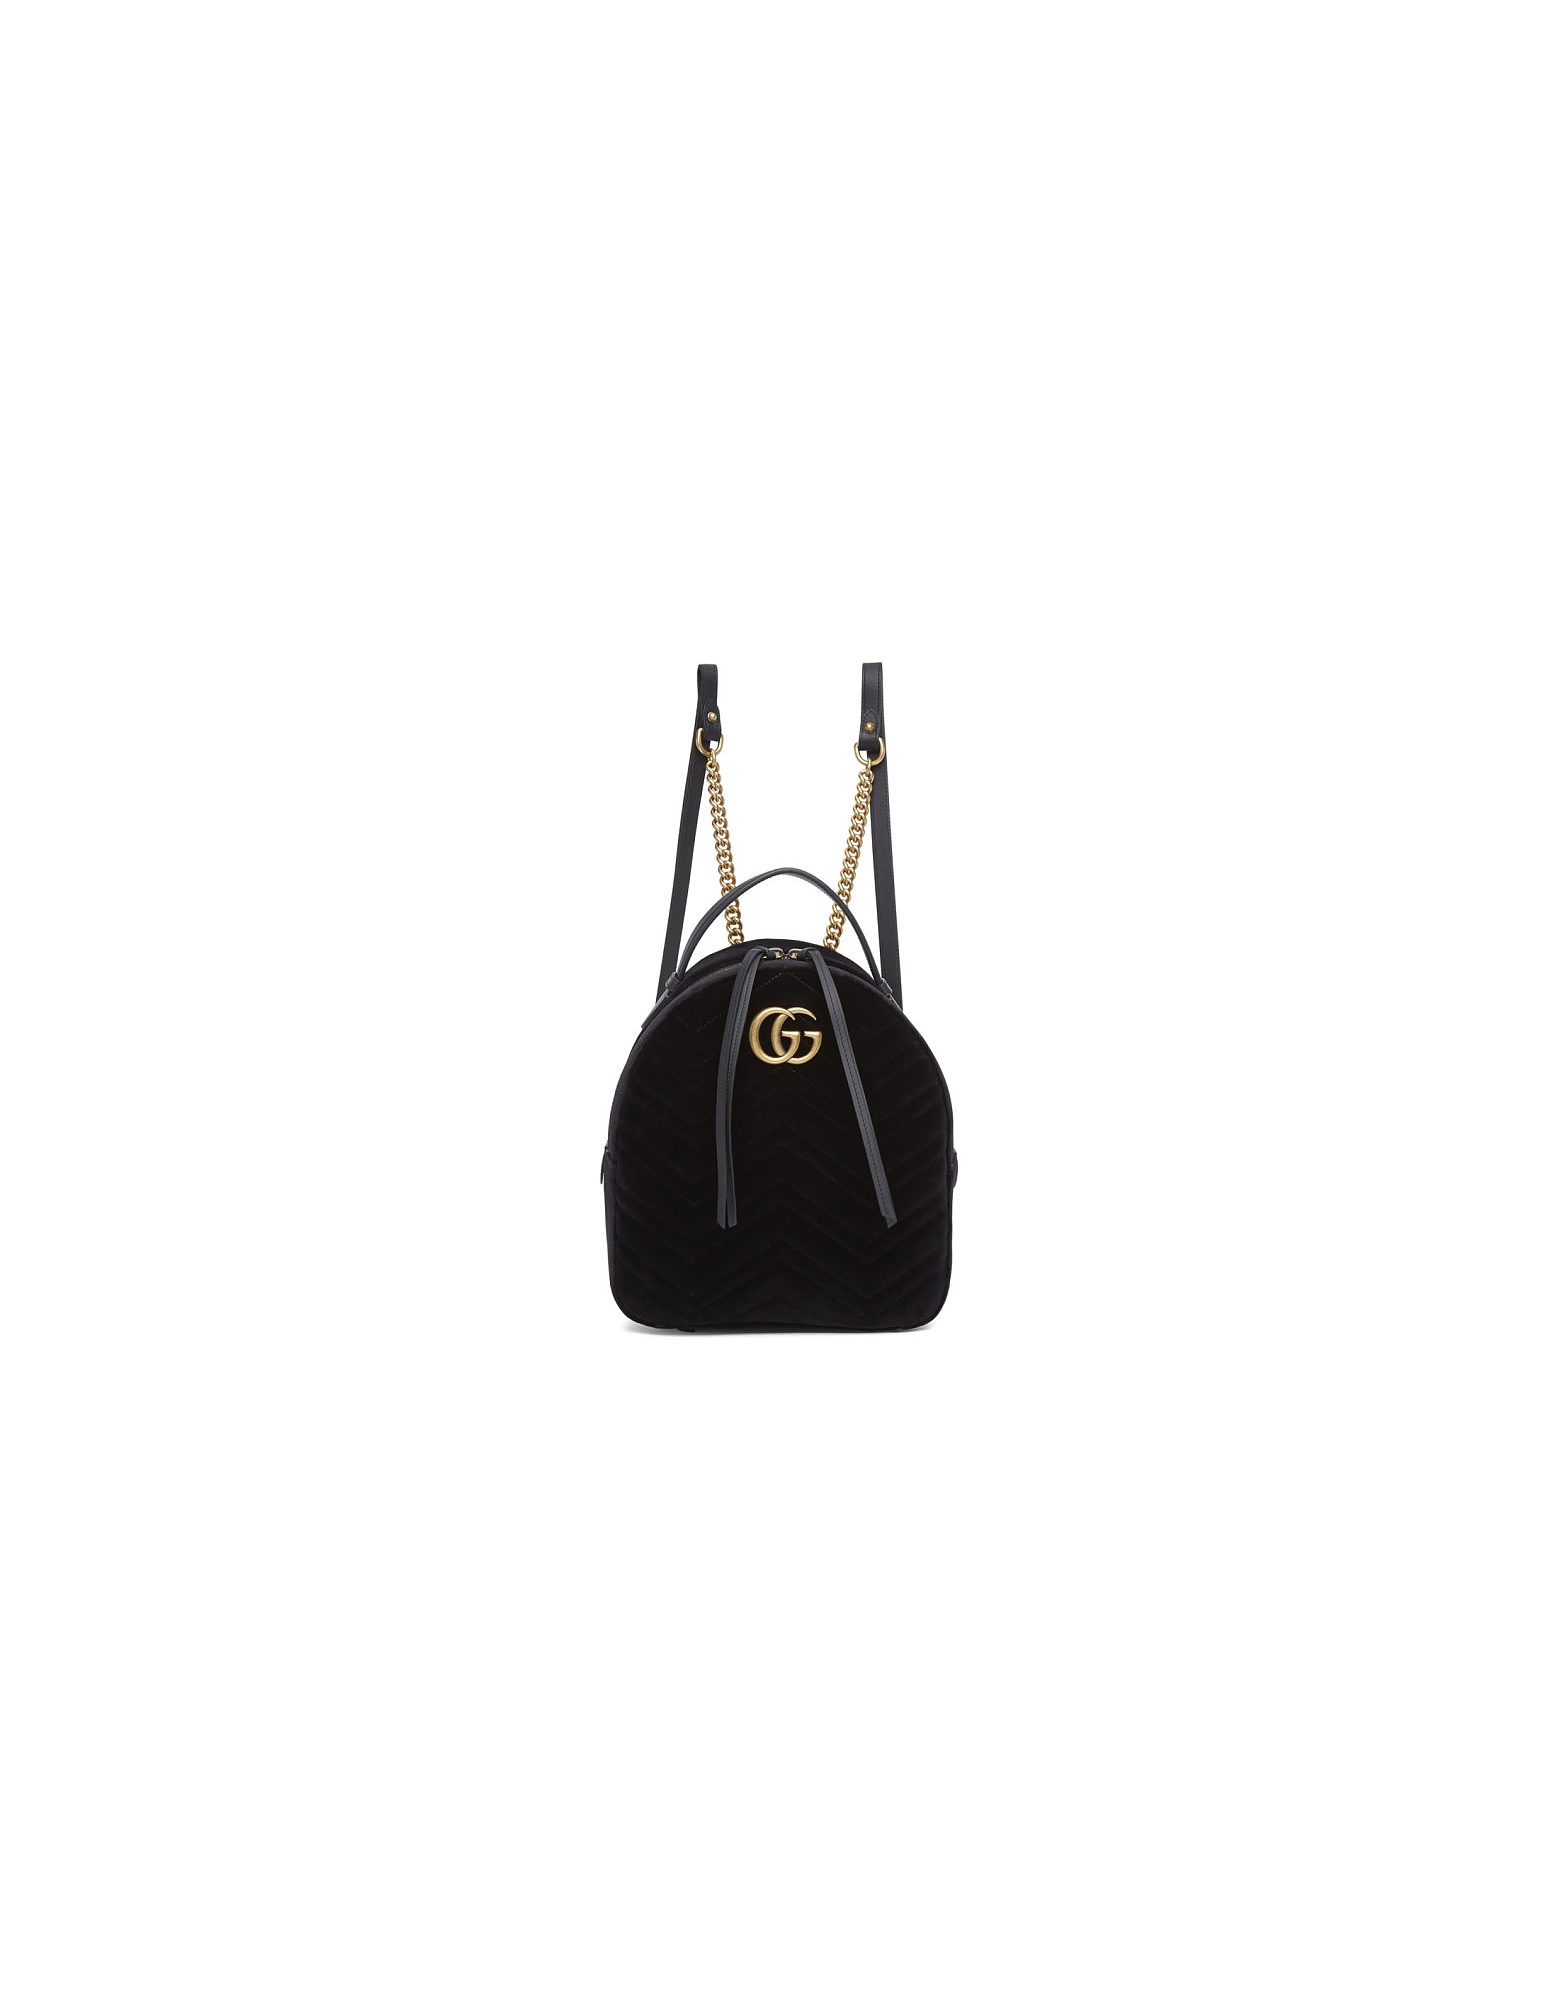 Gucci Designer Handbags, Black Velvet GG Marmont 2.0 Backpack